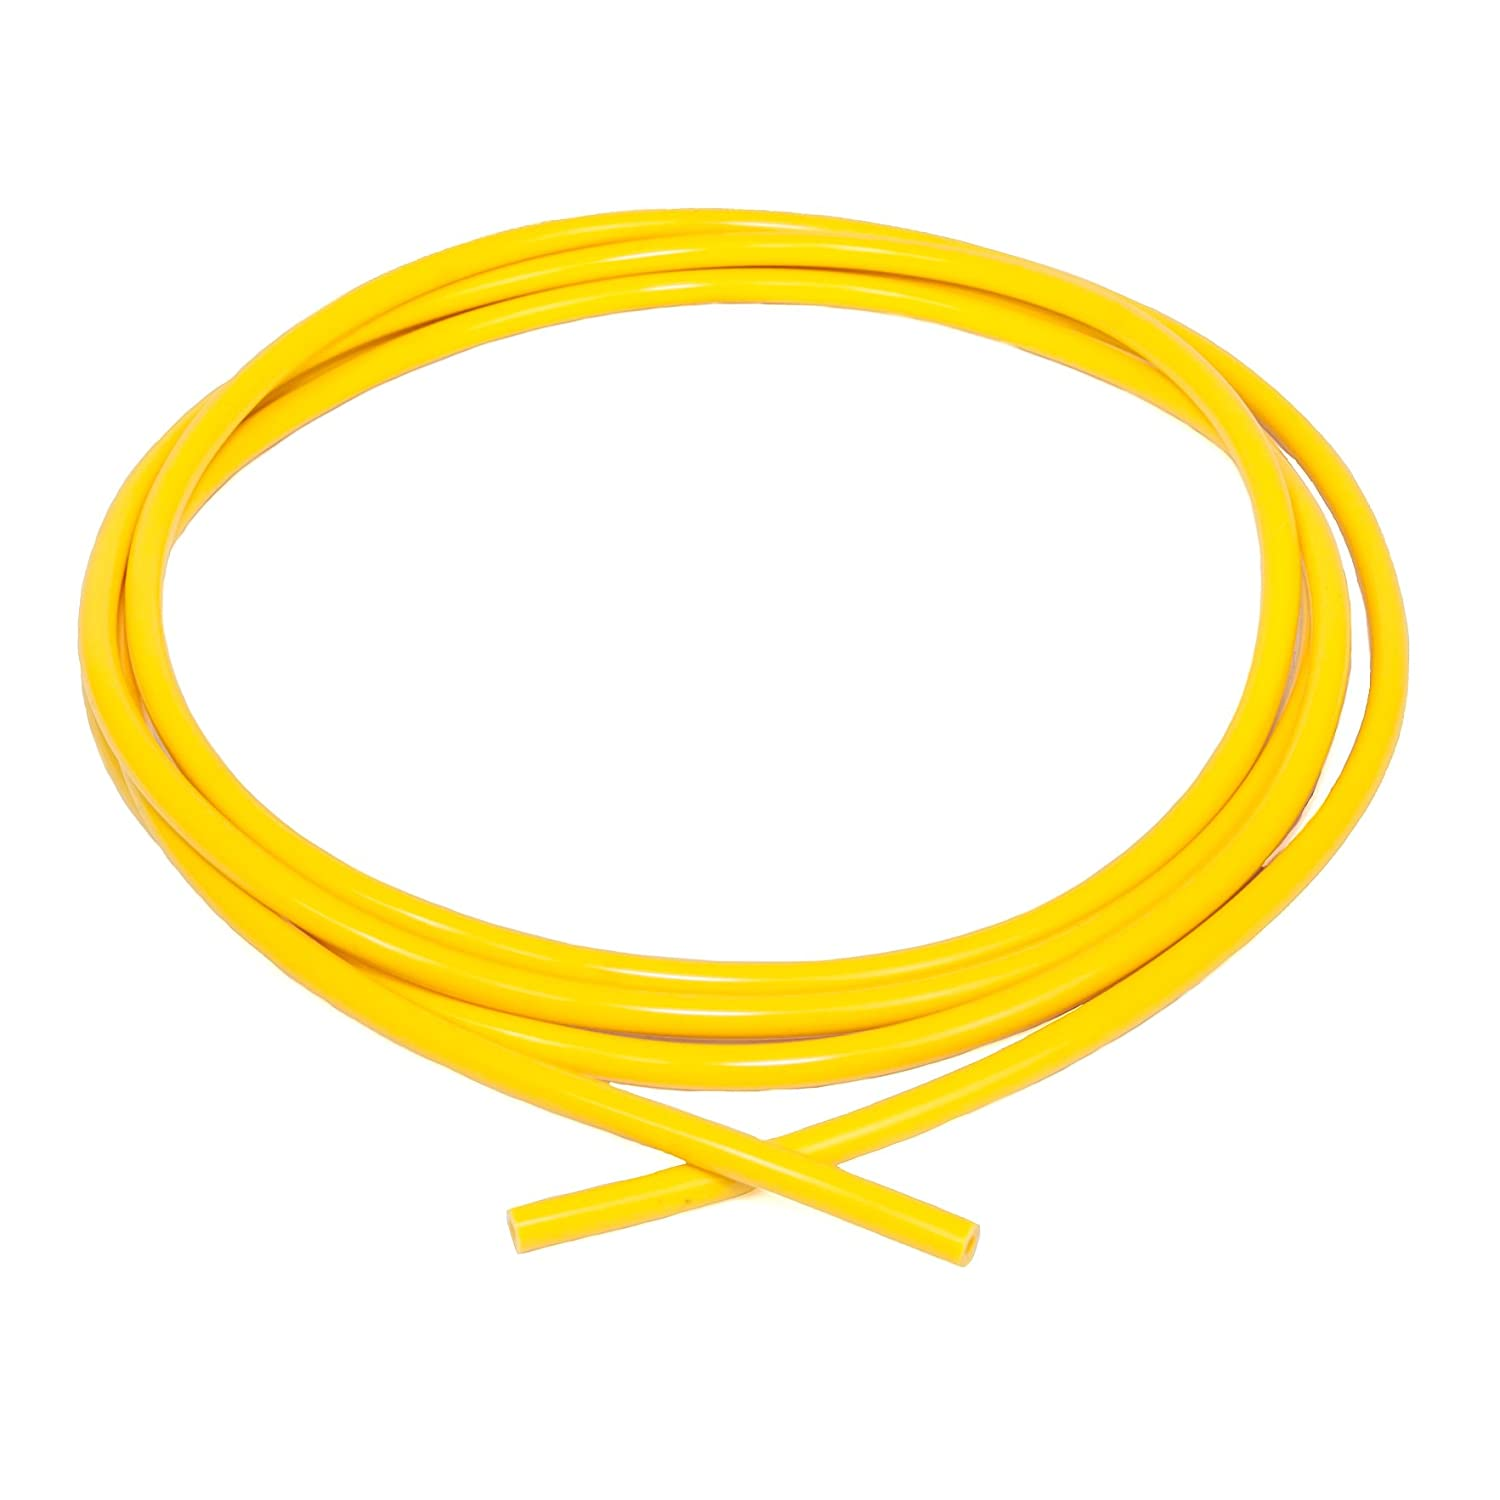 4 mm x 3 m Ramair Filters VAC4MM-3M-YW Silicone Vacuum Hose Yellow